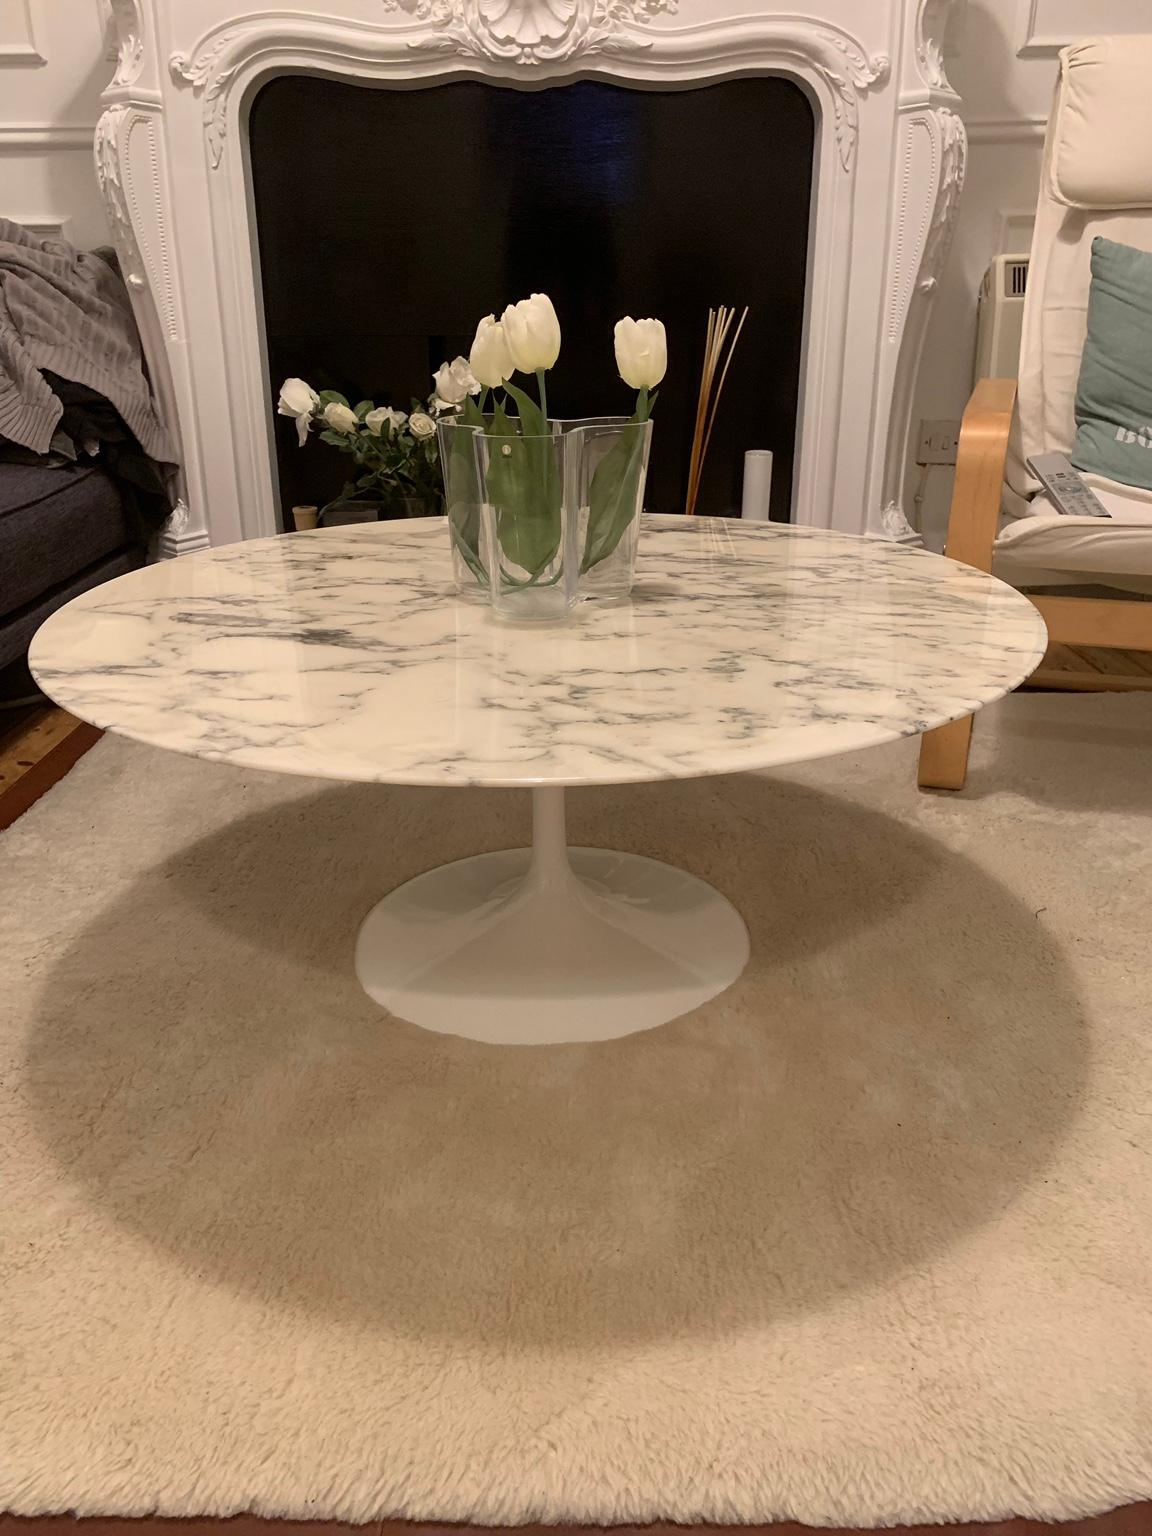 - Knoll Saarinen Tulip Coffee Table In SW1V Westminster Für 1.750,00